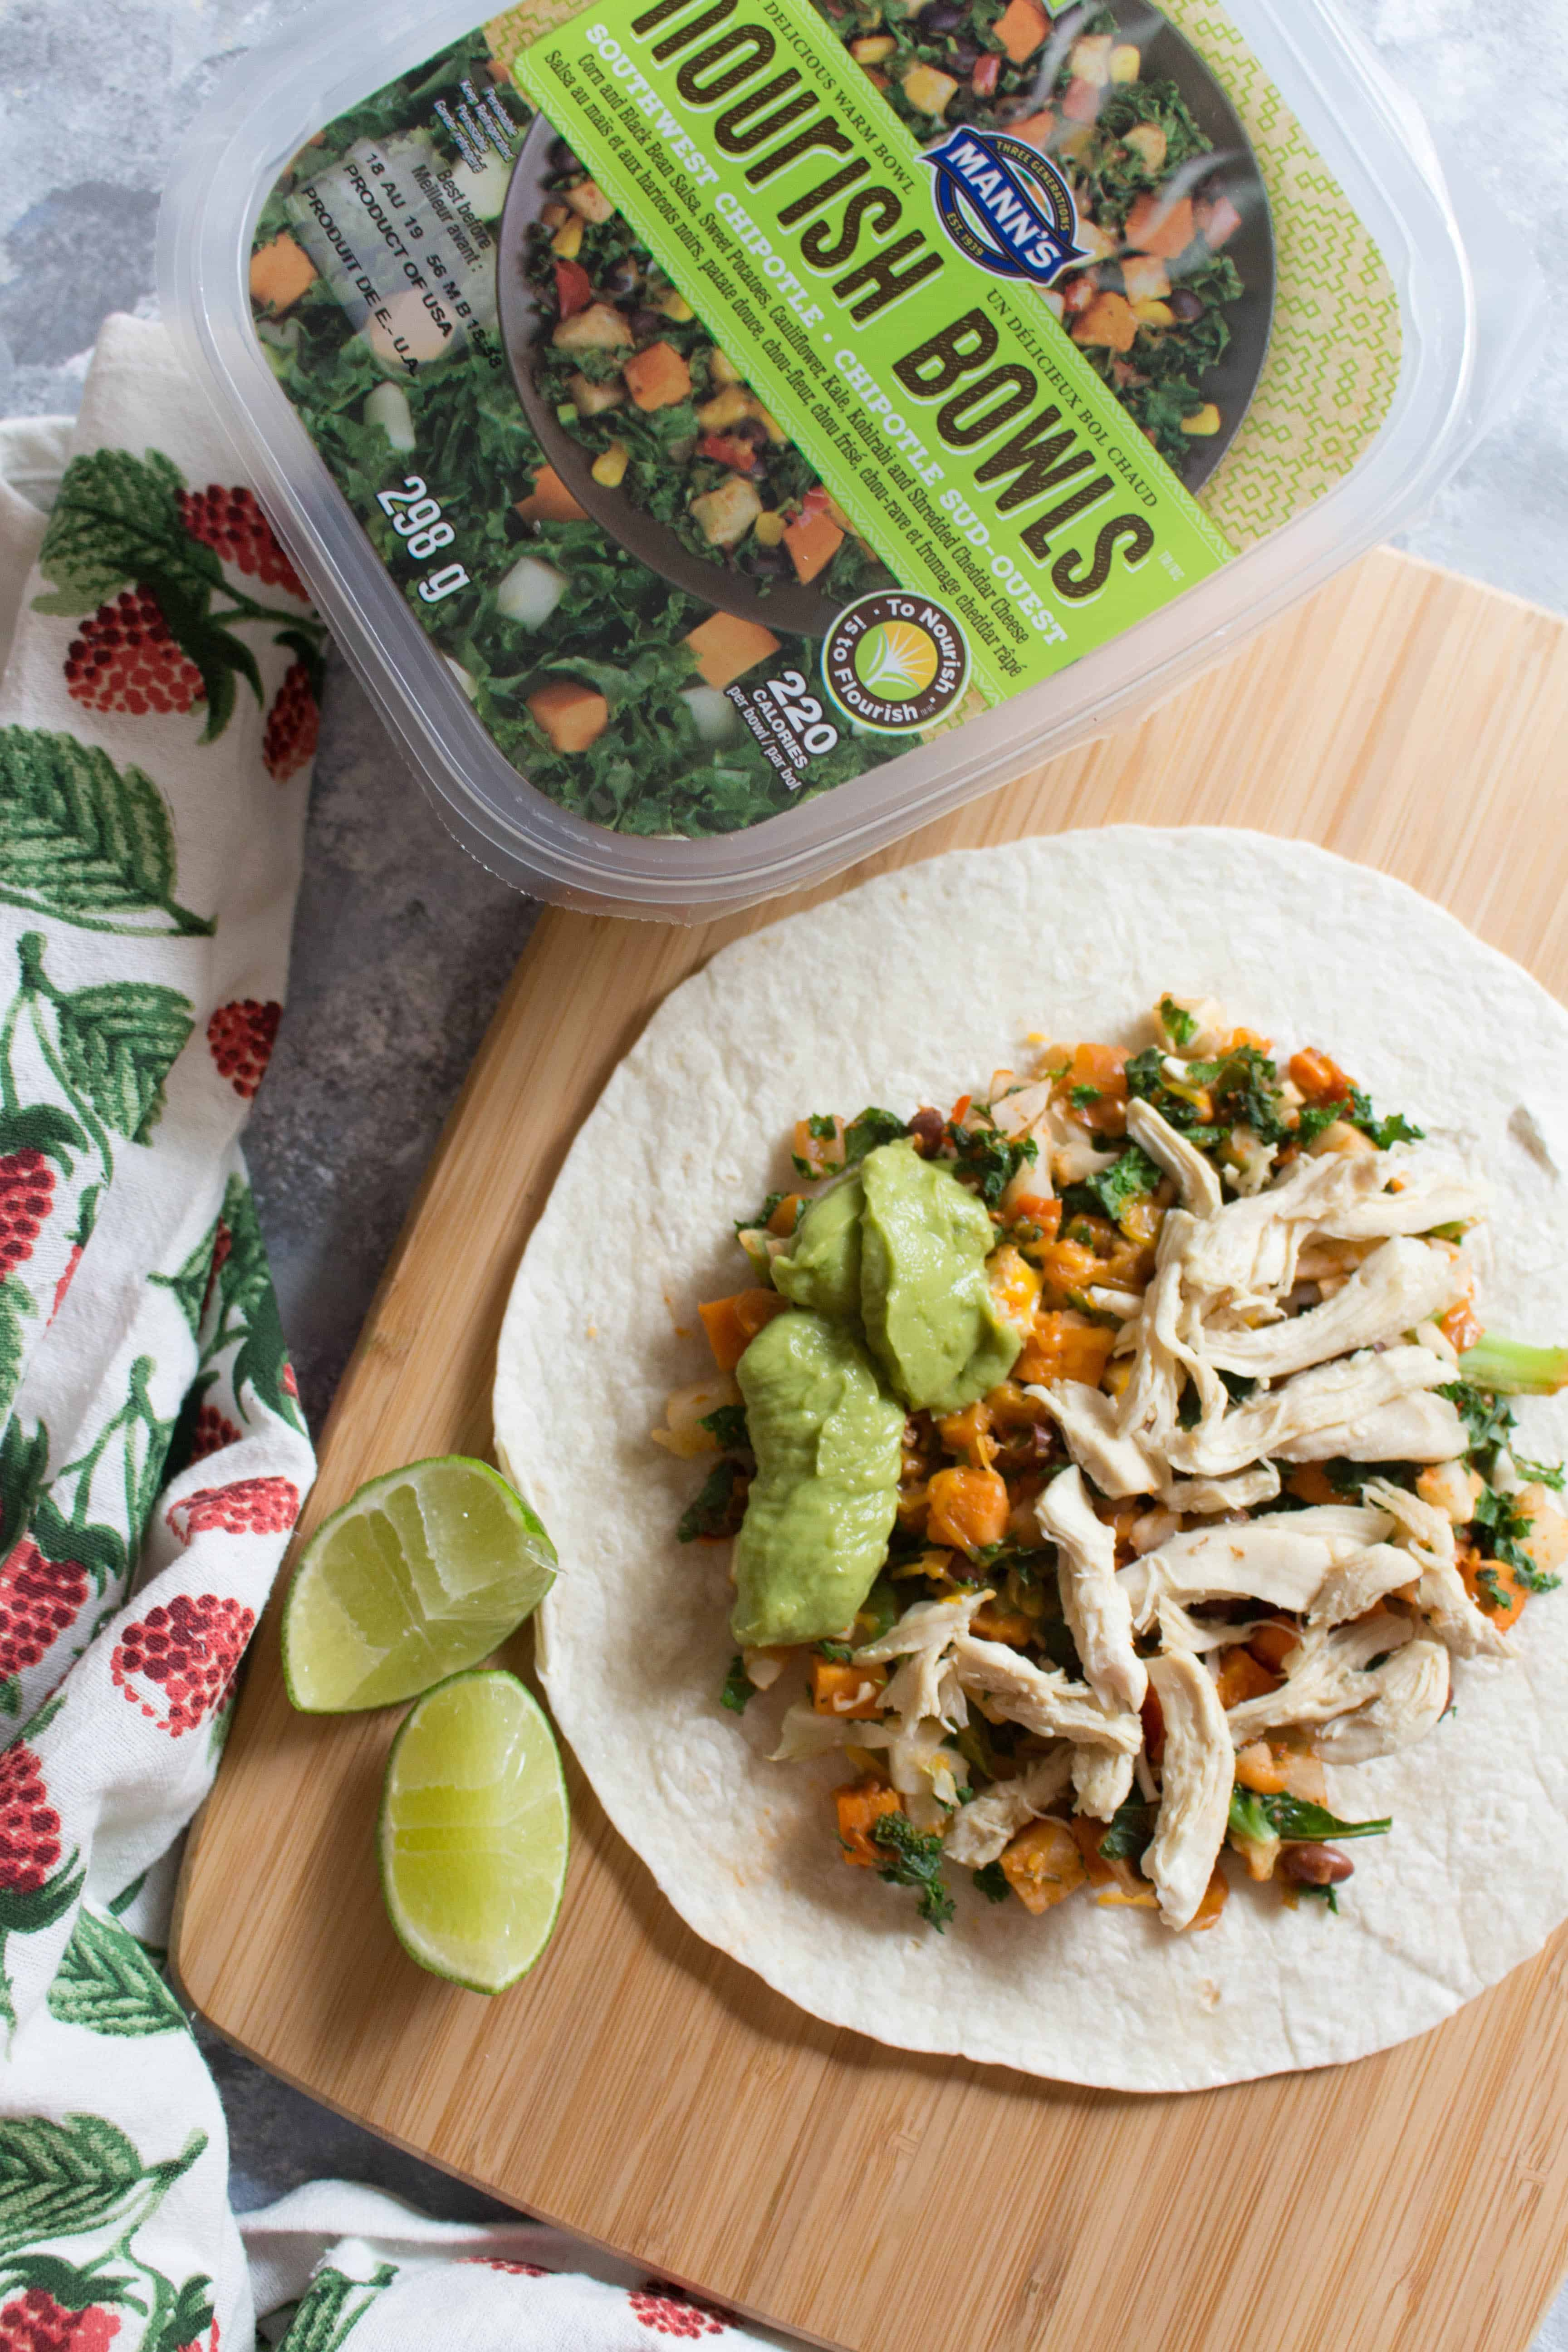 Southwest Chipotle Chicken Wrap